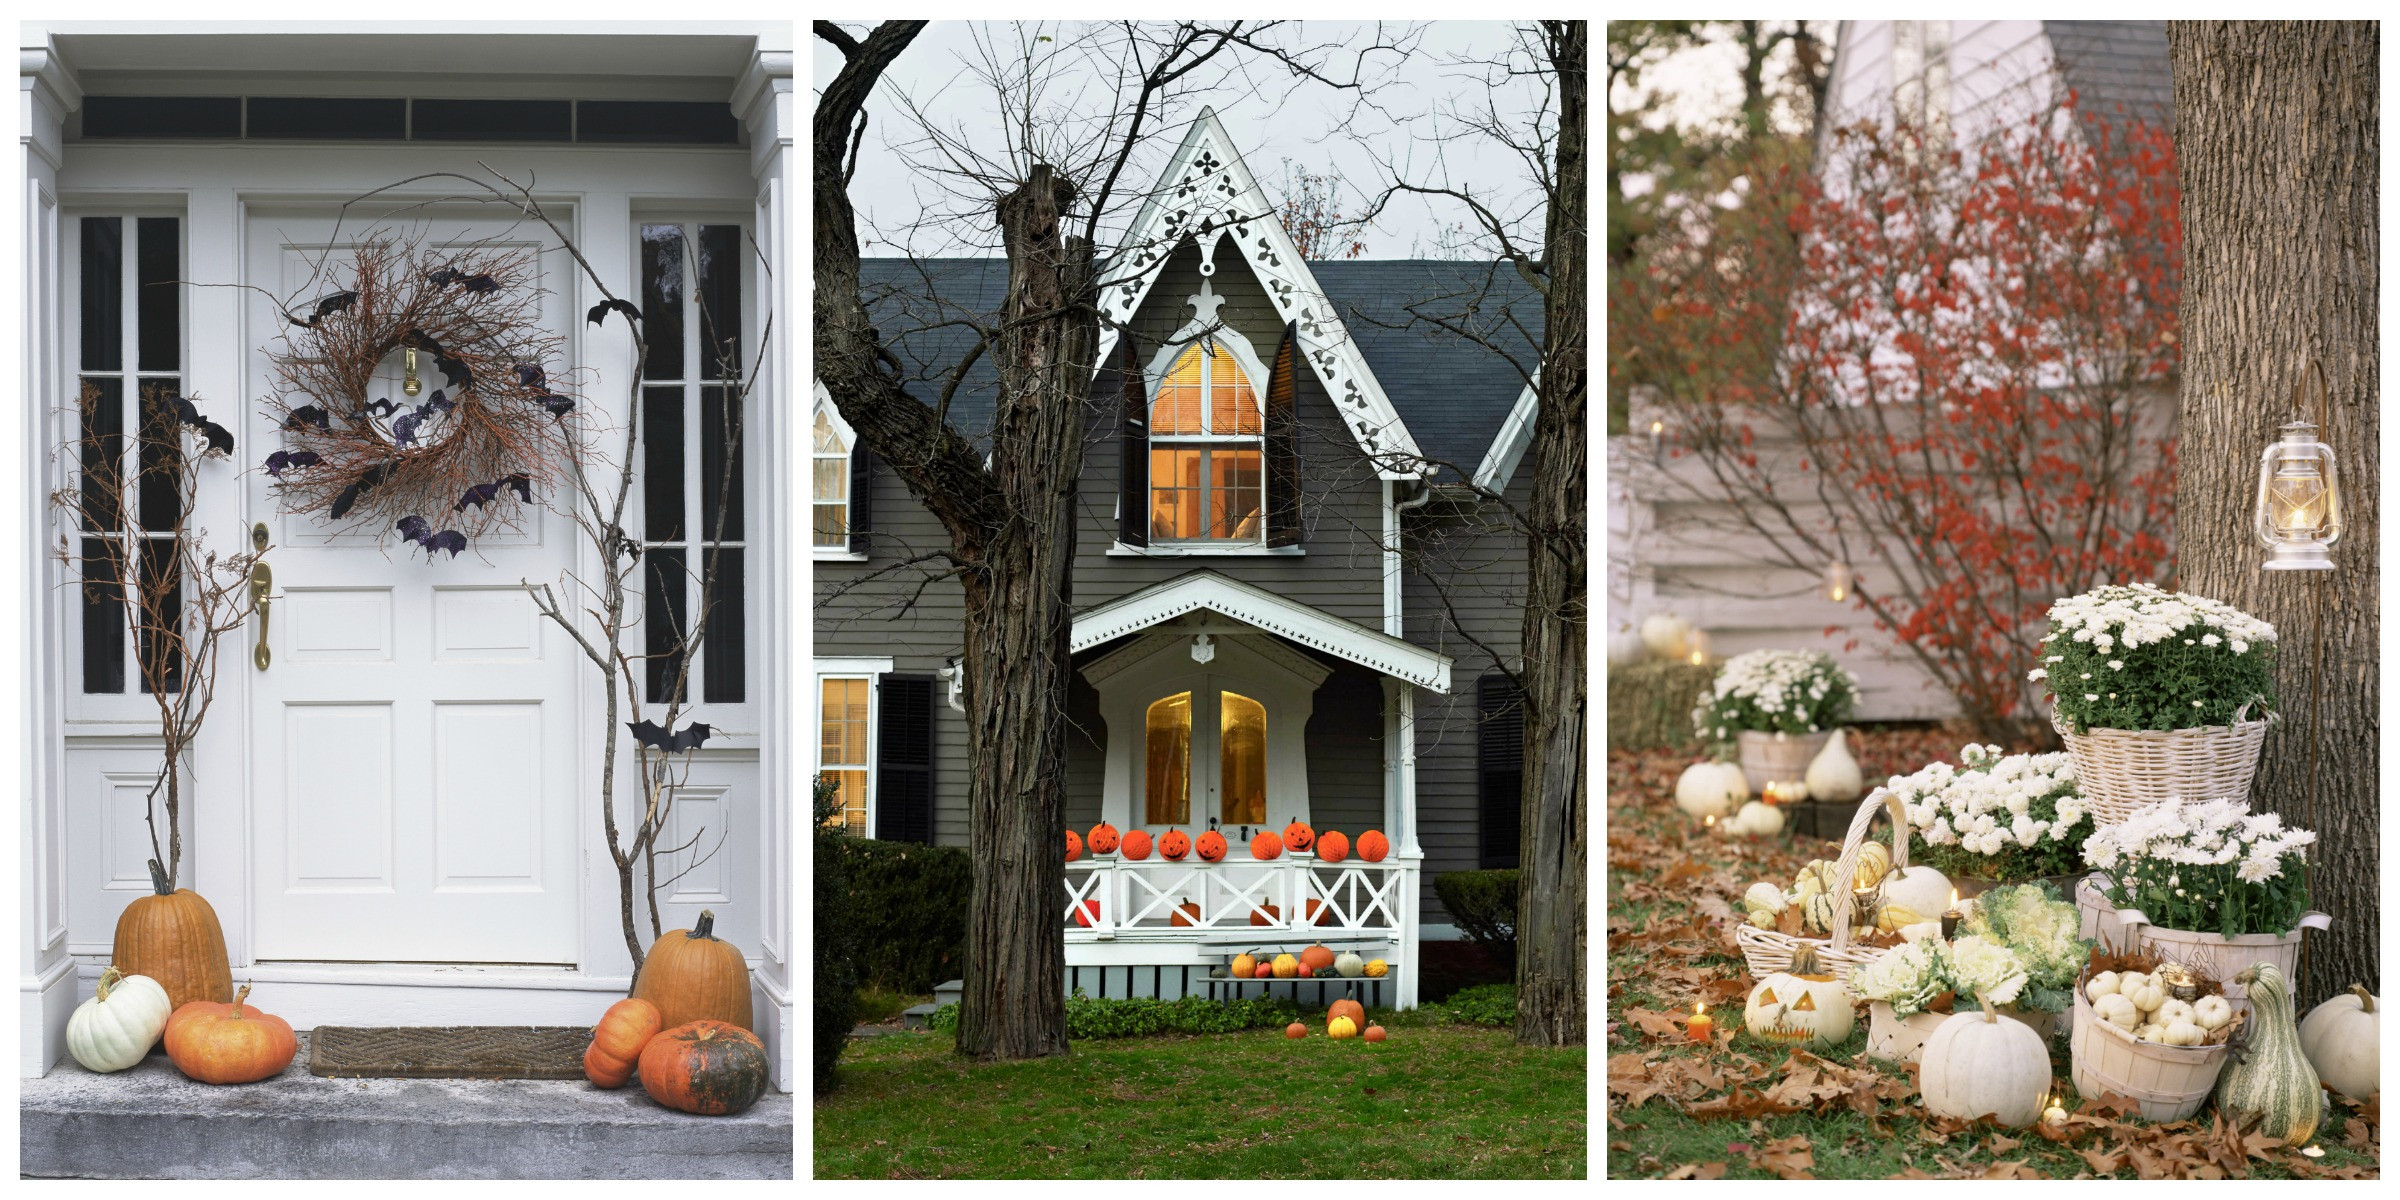 Diy Halloween Porch Decorations  30 Best Outdoor Halloween Decoration Ideas Easy